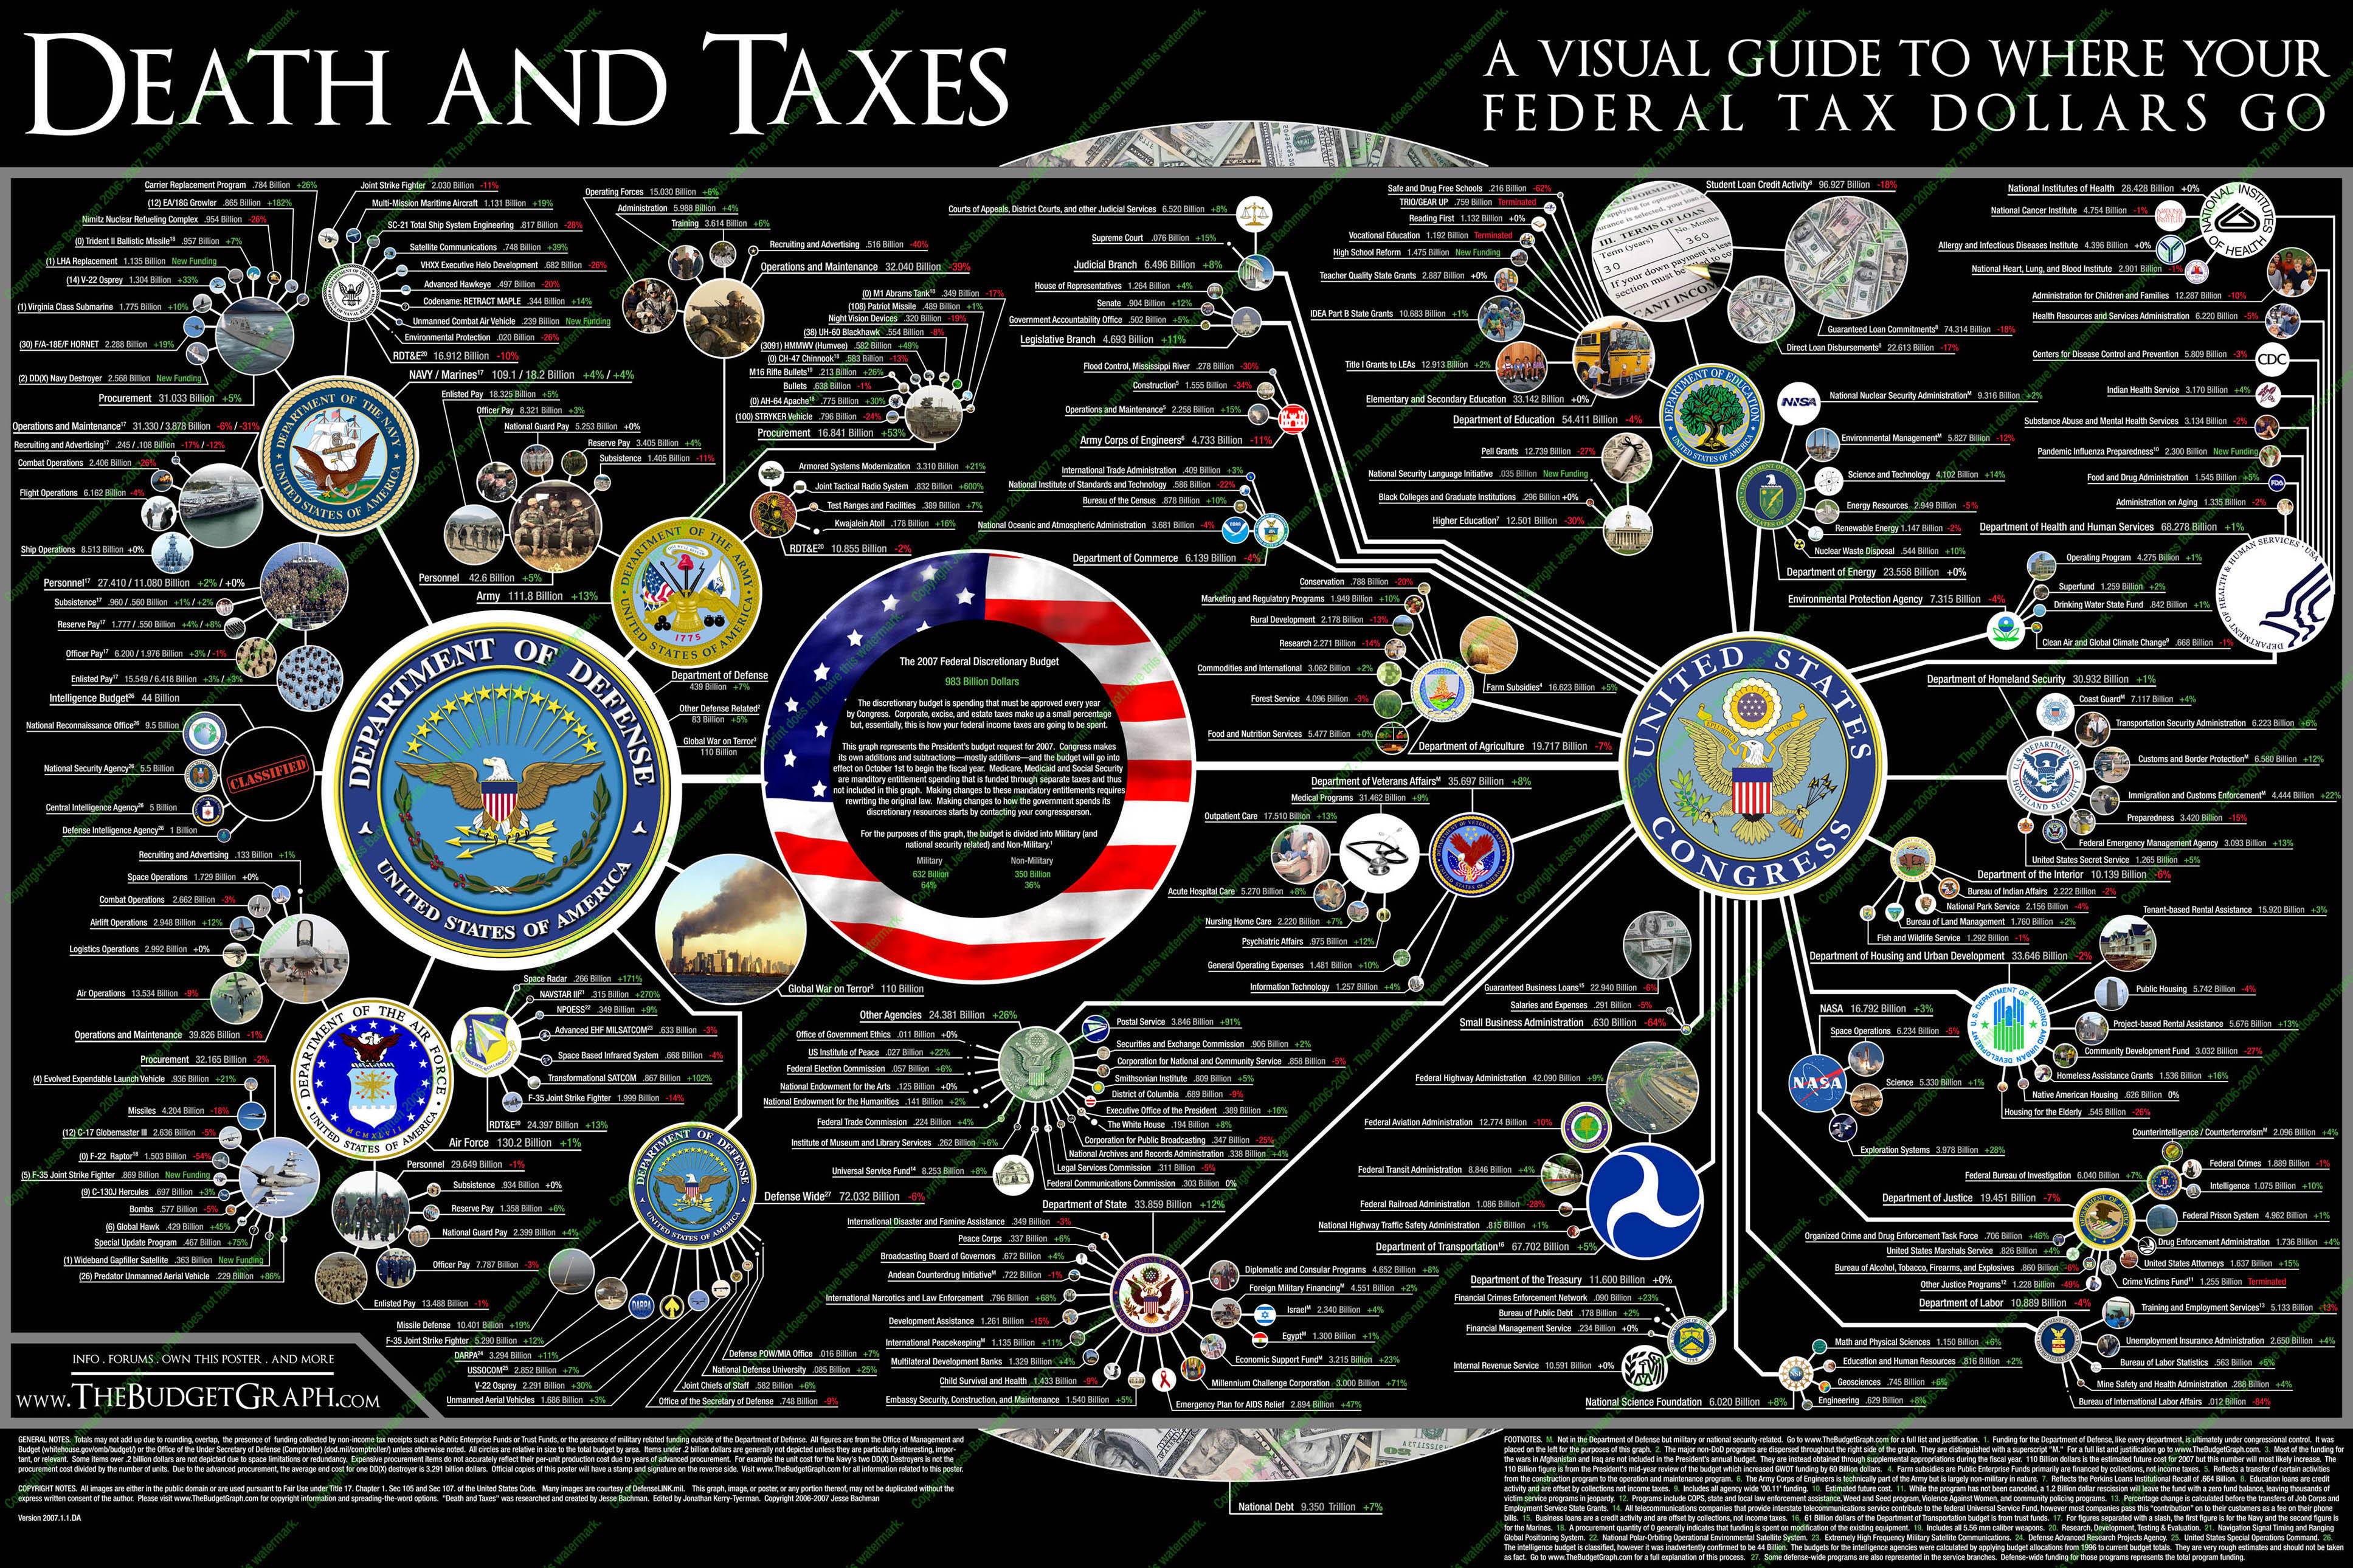 http://fc04.deviantart.com/fs12/i/2006/260/9/f/Death_and_Taxes__2007_by_mibi.jpg